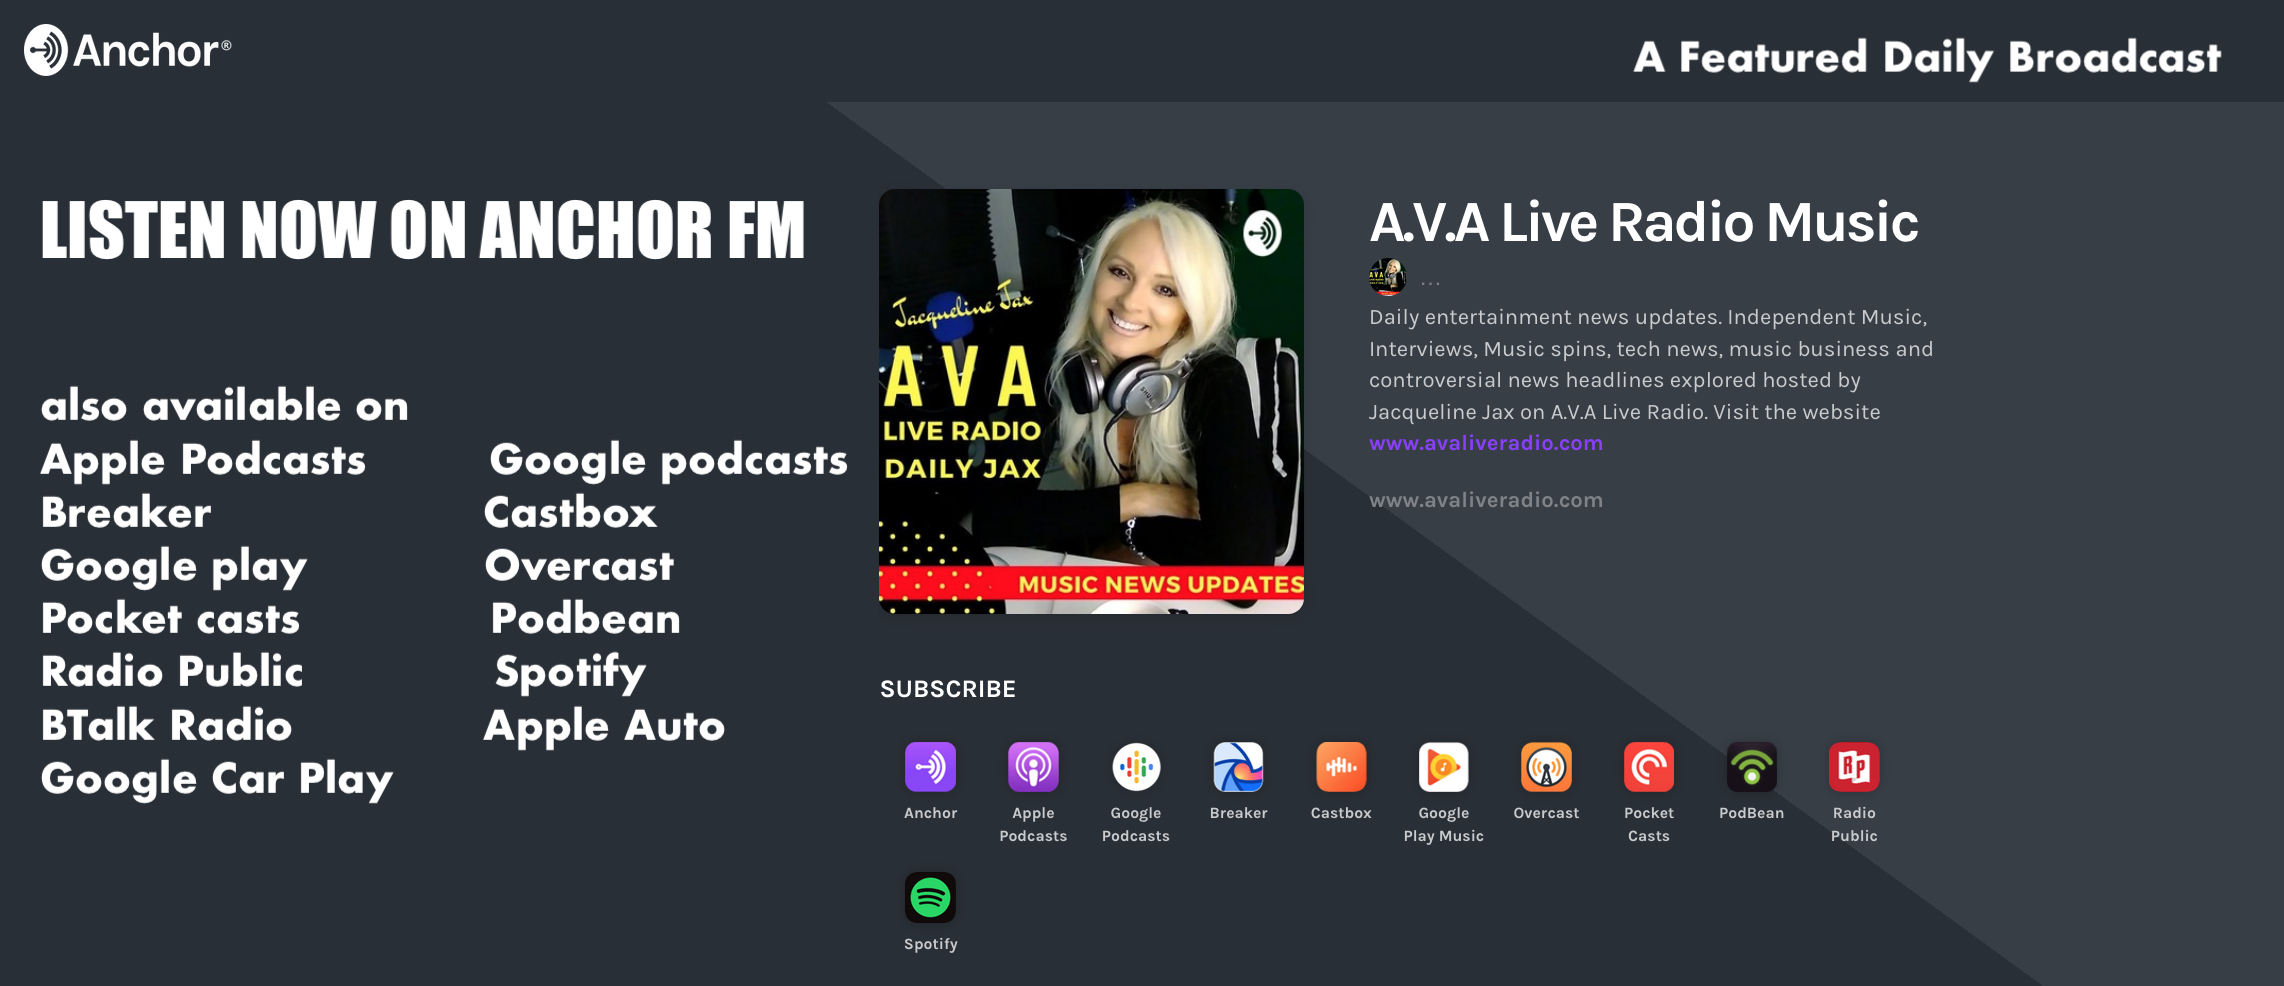 https://anchor.fm/ava-live-radio